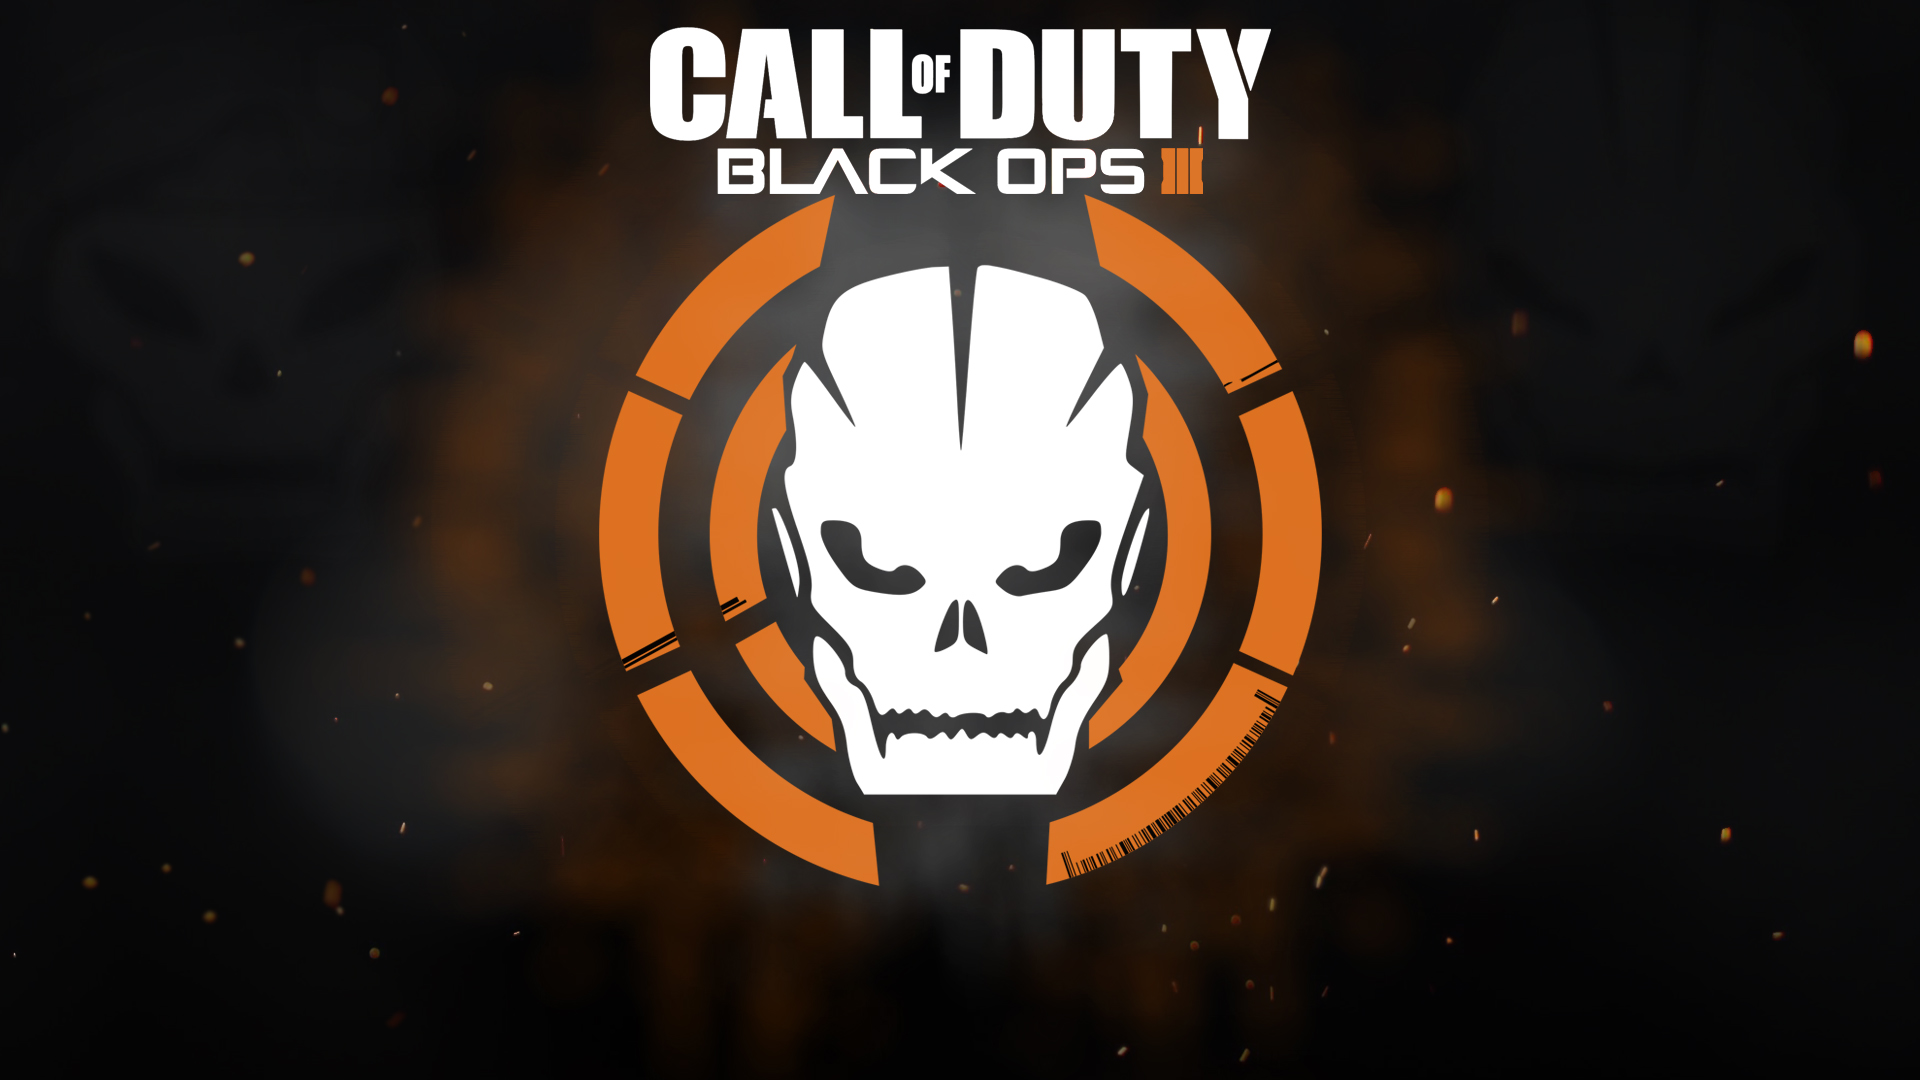 Call of duty Black ops Win Improper quit Body patch